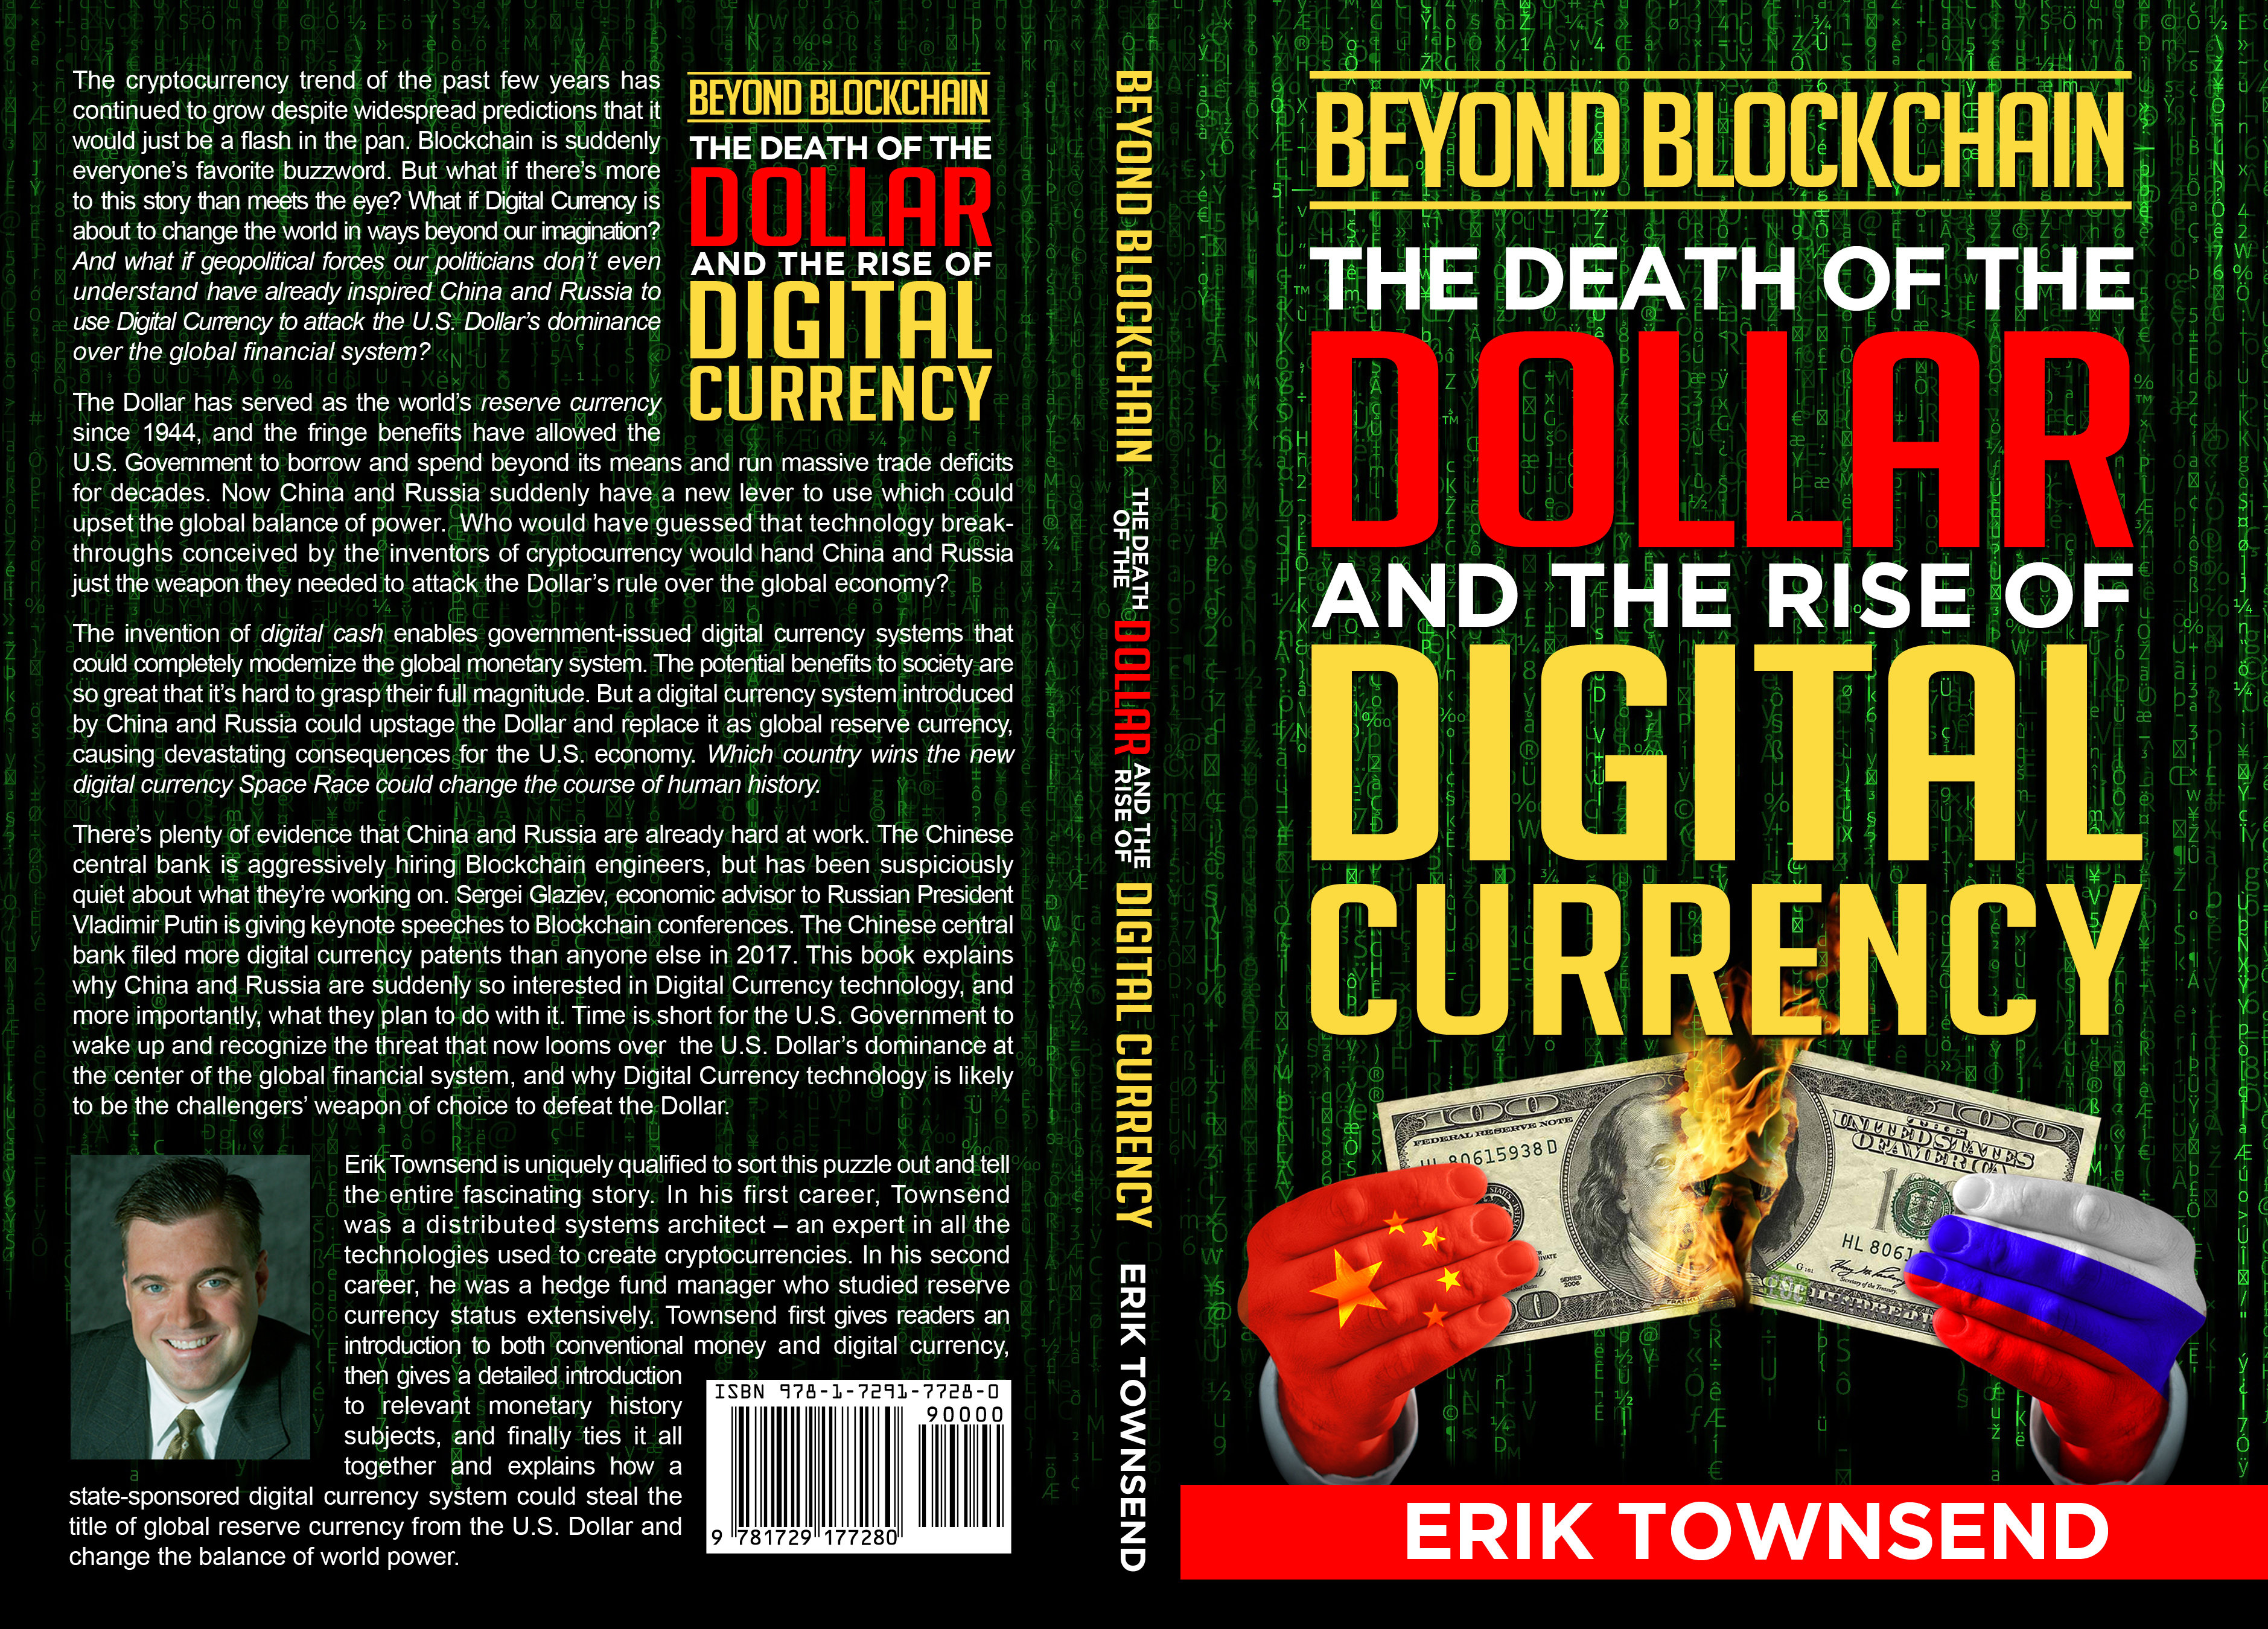 Beyond Blockchain The Death of the Dollar and The Rise of Digital Currency